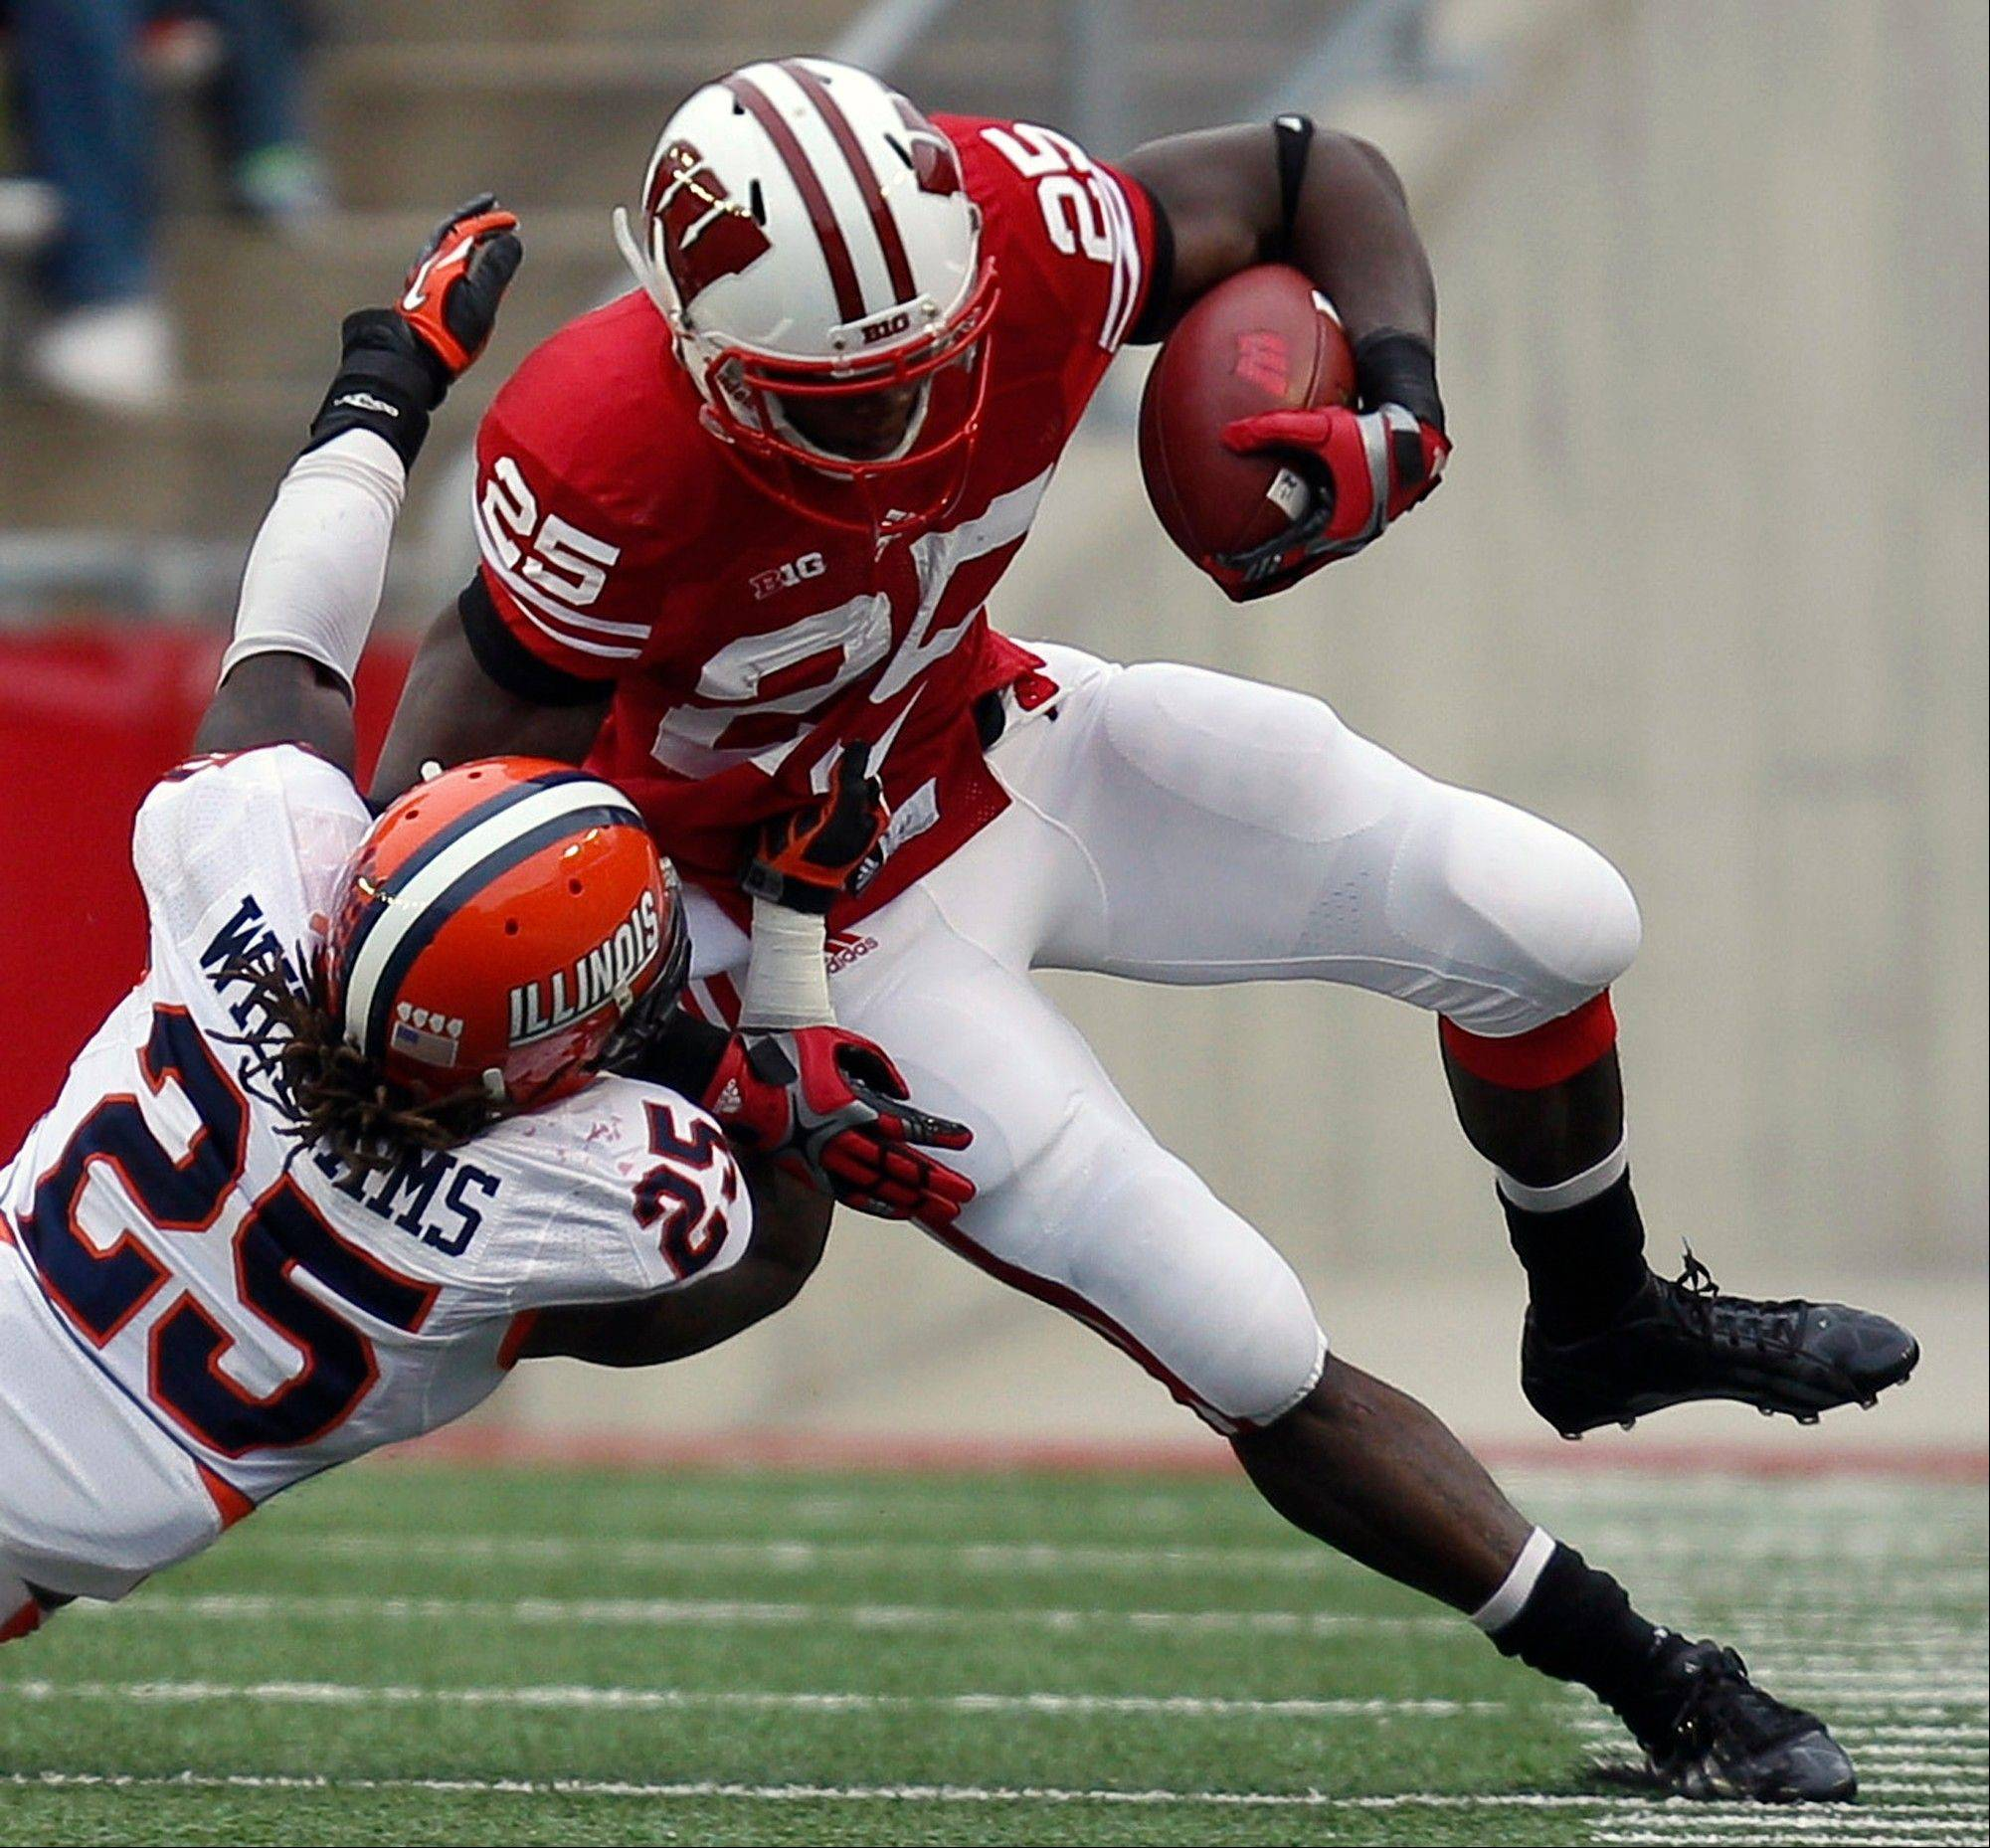 Wisconsin running back Melvin Gordon runs against Illinois linebacker Ashante Williams Saturday during the first half in Madison, Wis.